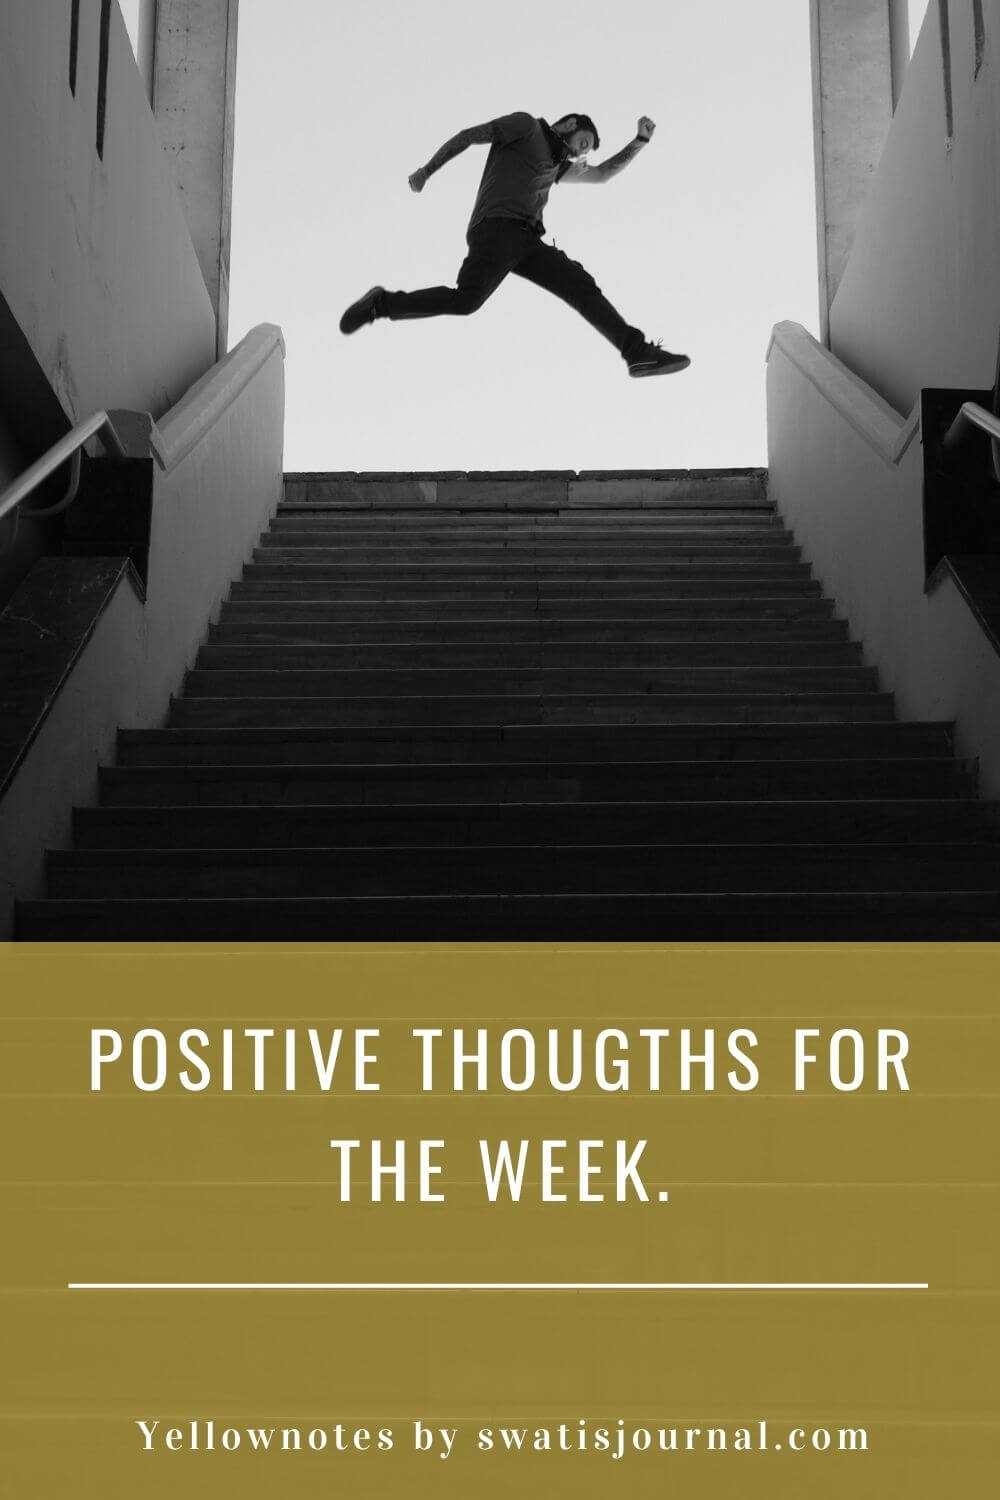 Yellownotes – Daily Quotes | Quote of the Week | March 2020 | Week 01 5 (1)